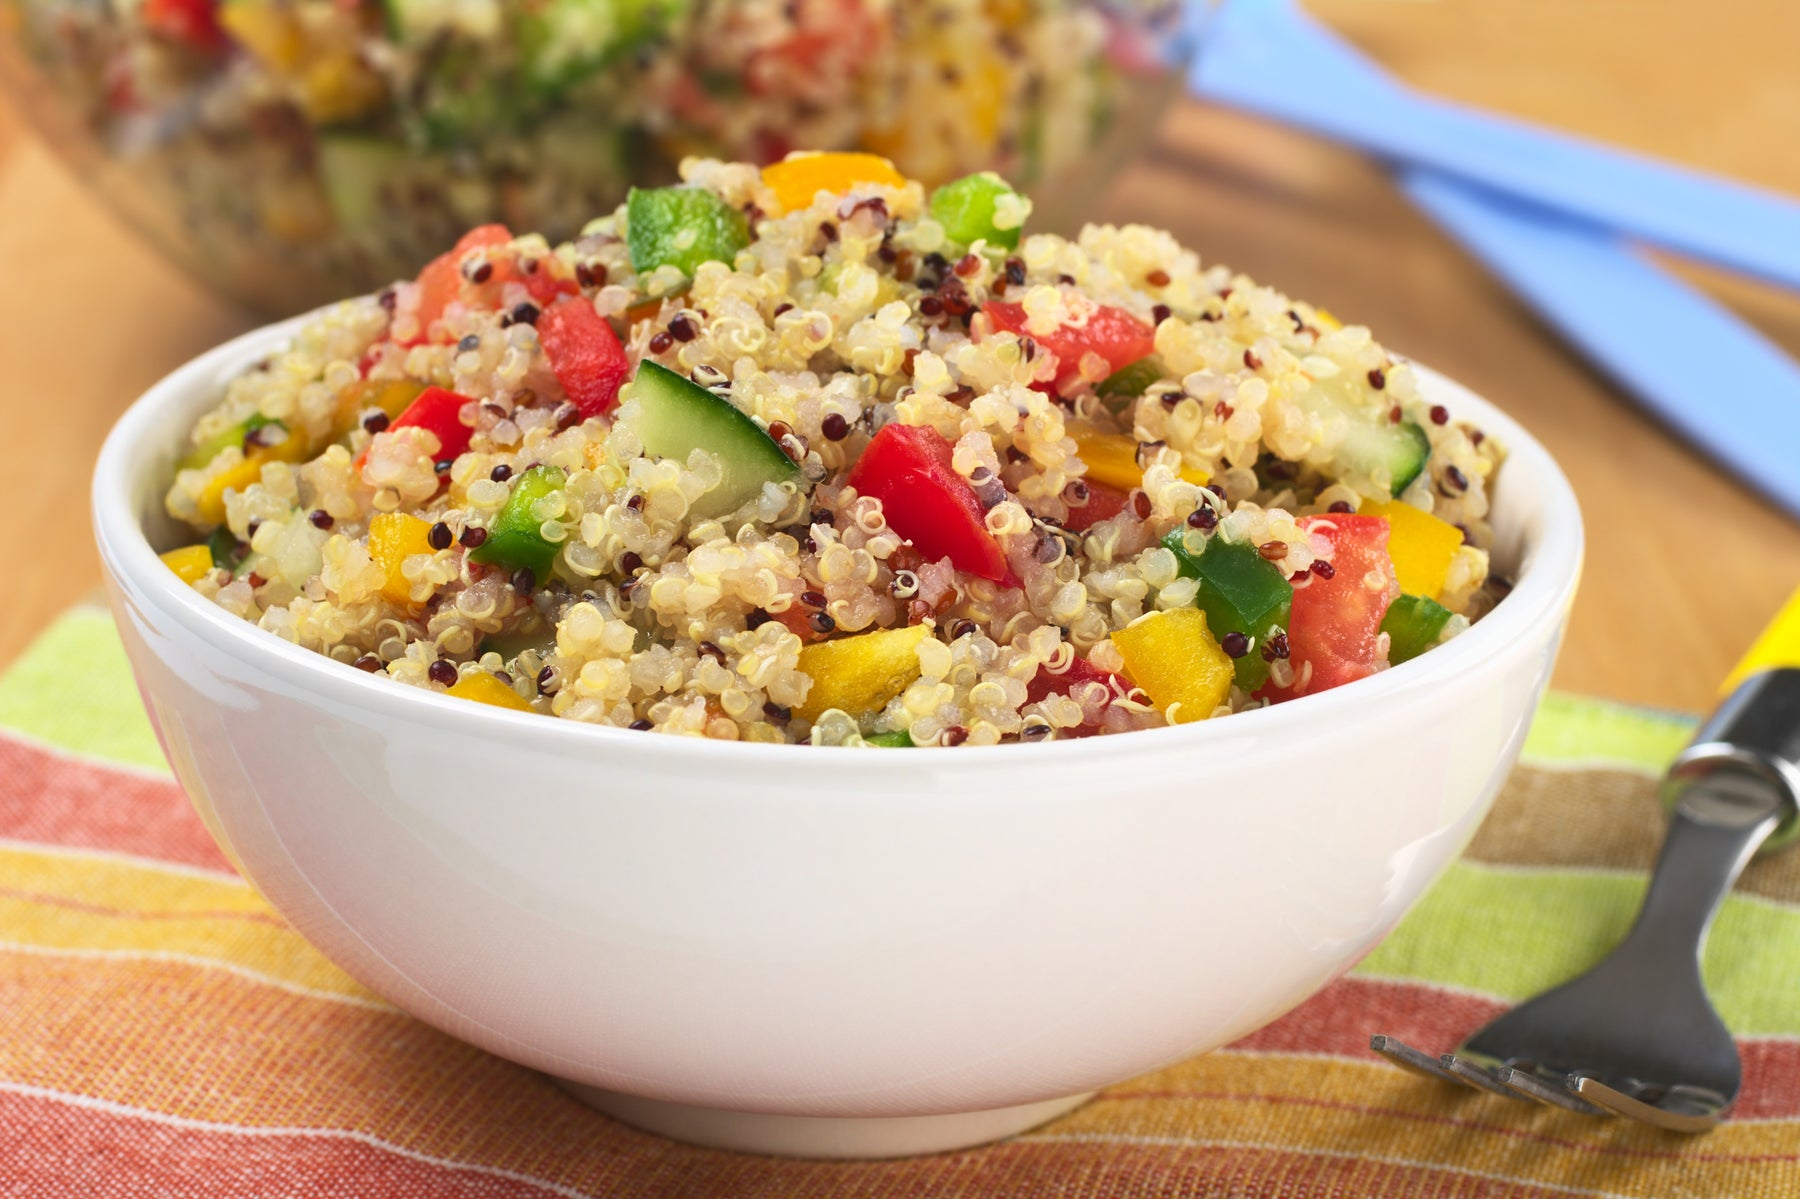 Herbed Quinoa with Vegetables